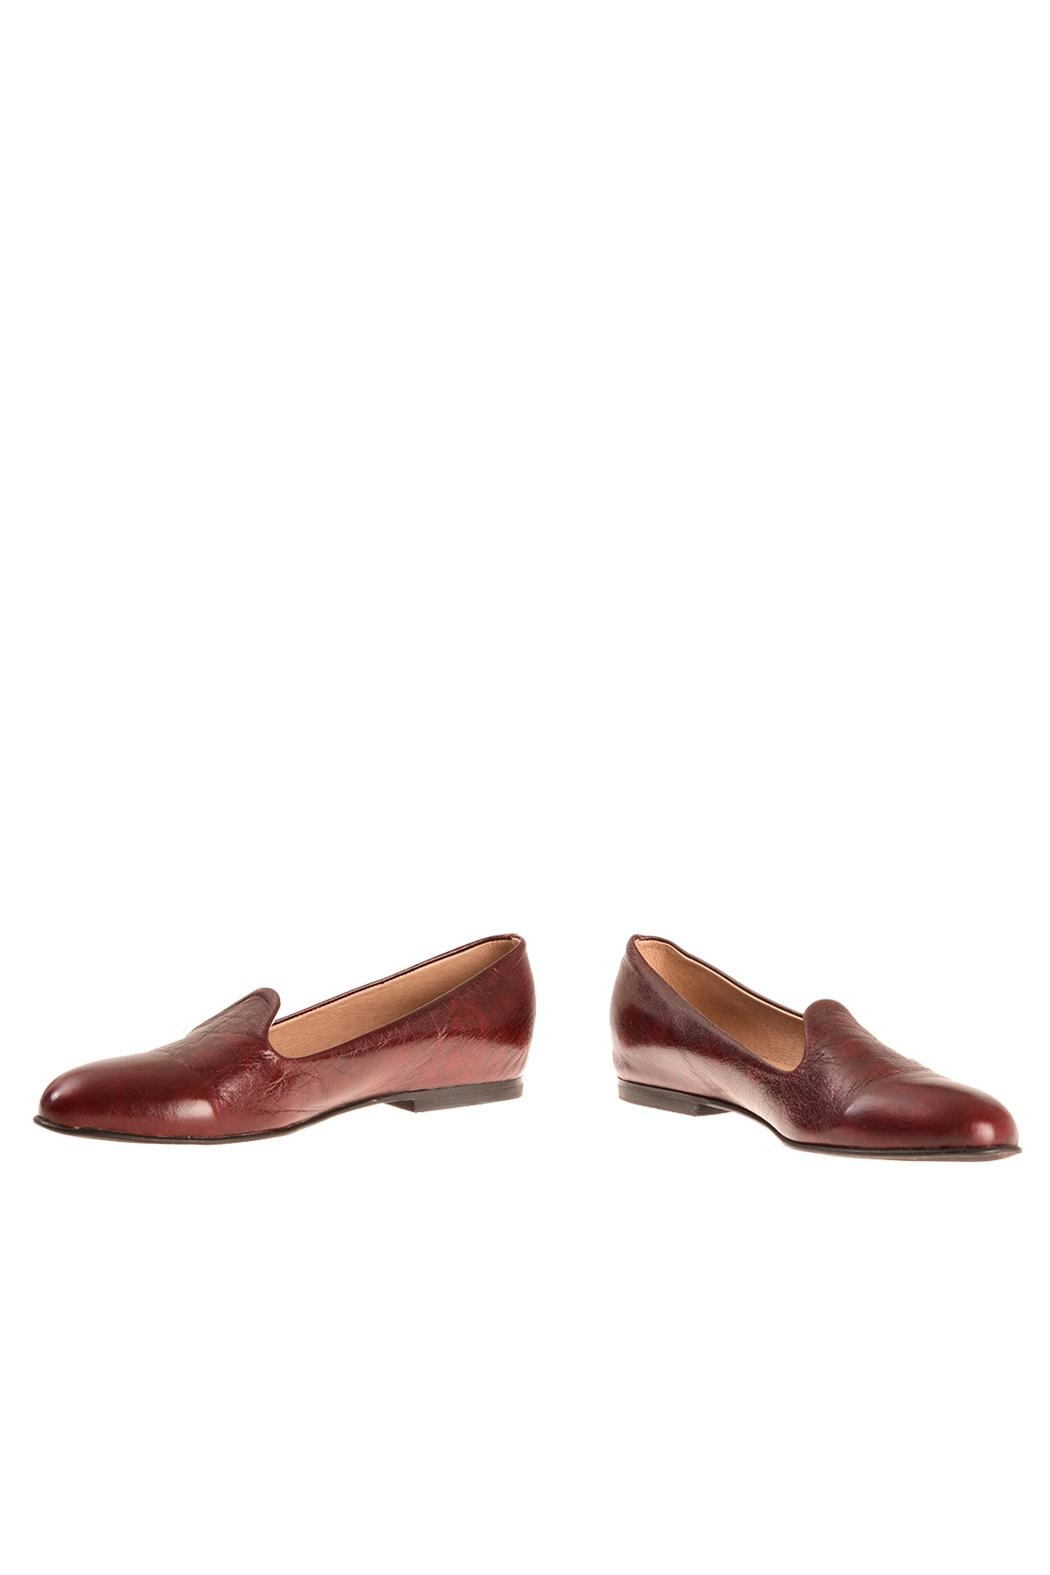 Bottega Bash Bourdeaux Leather Loafers - Front Full Image